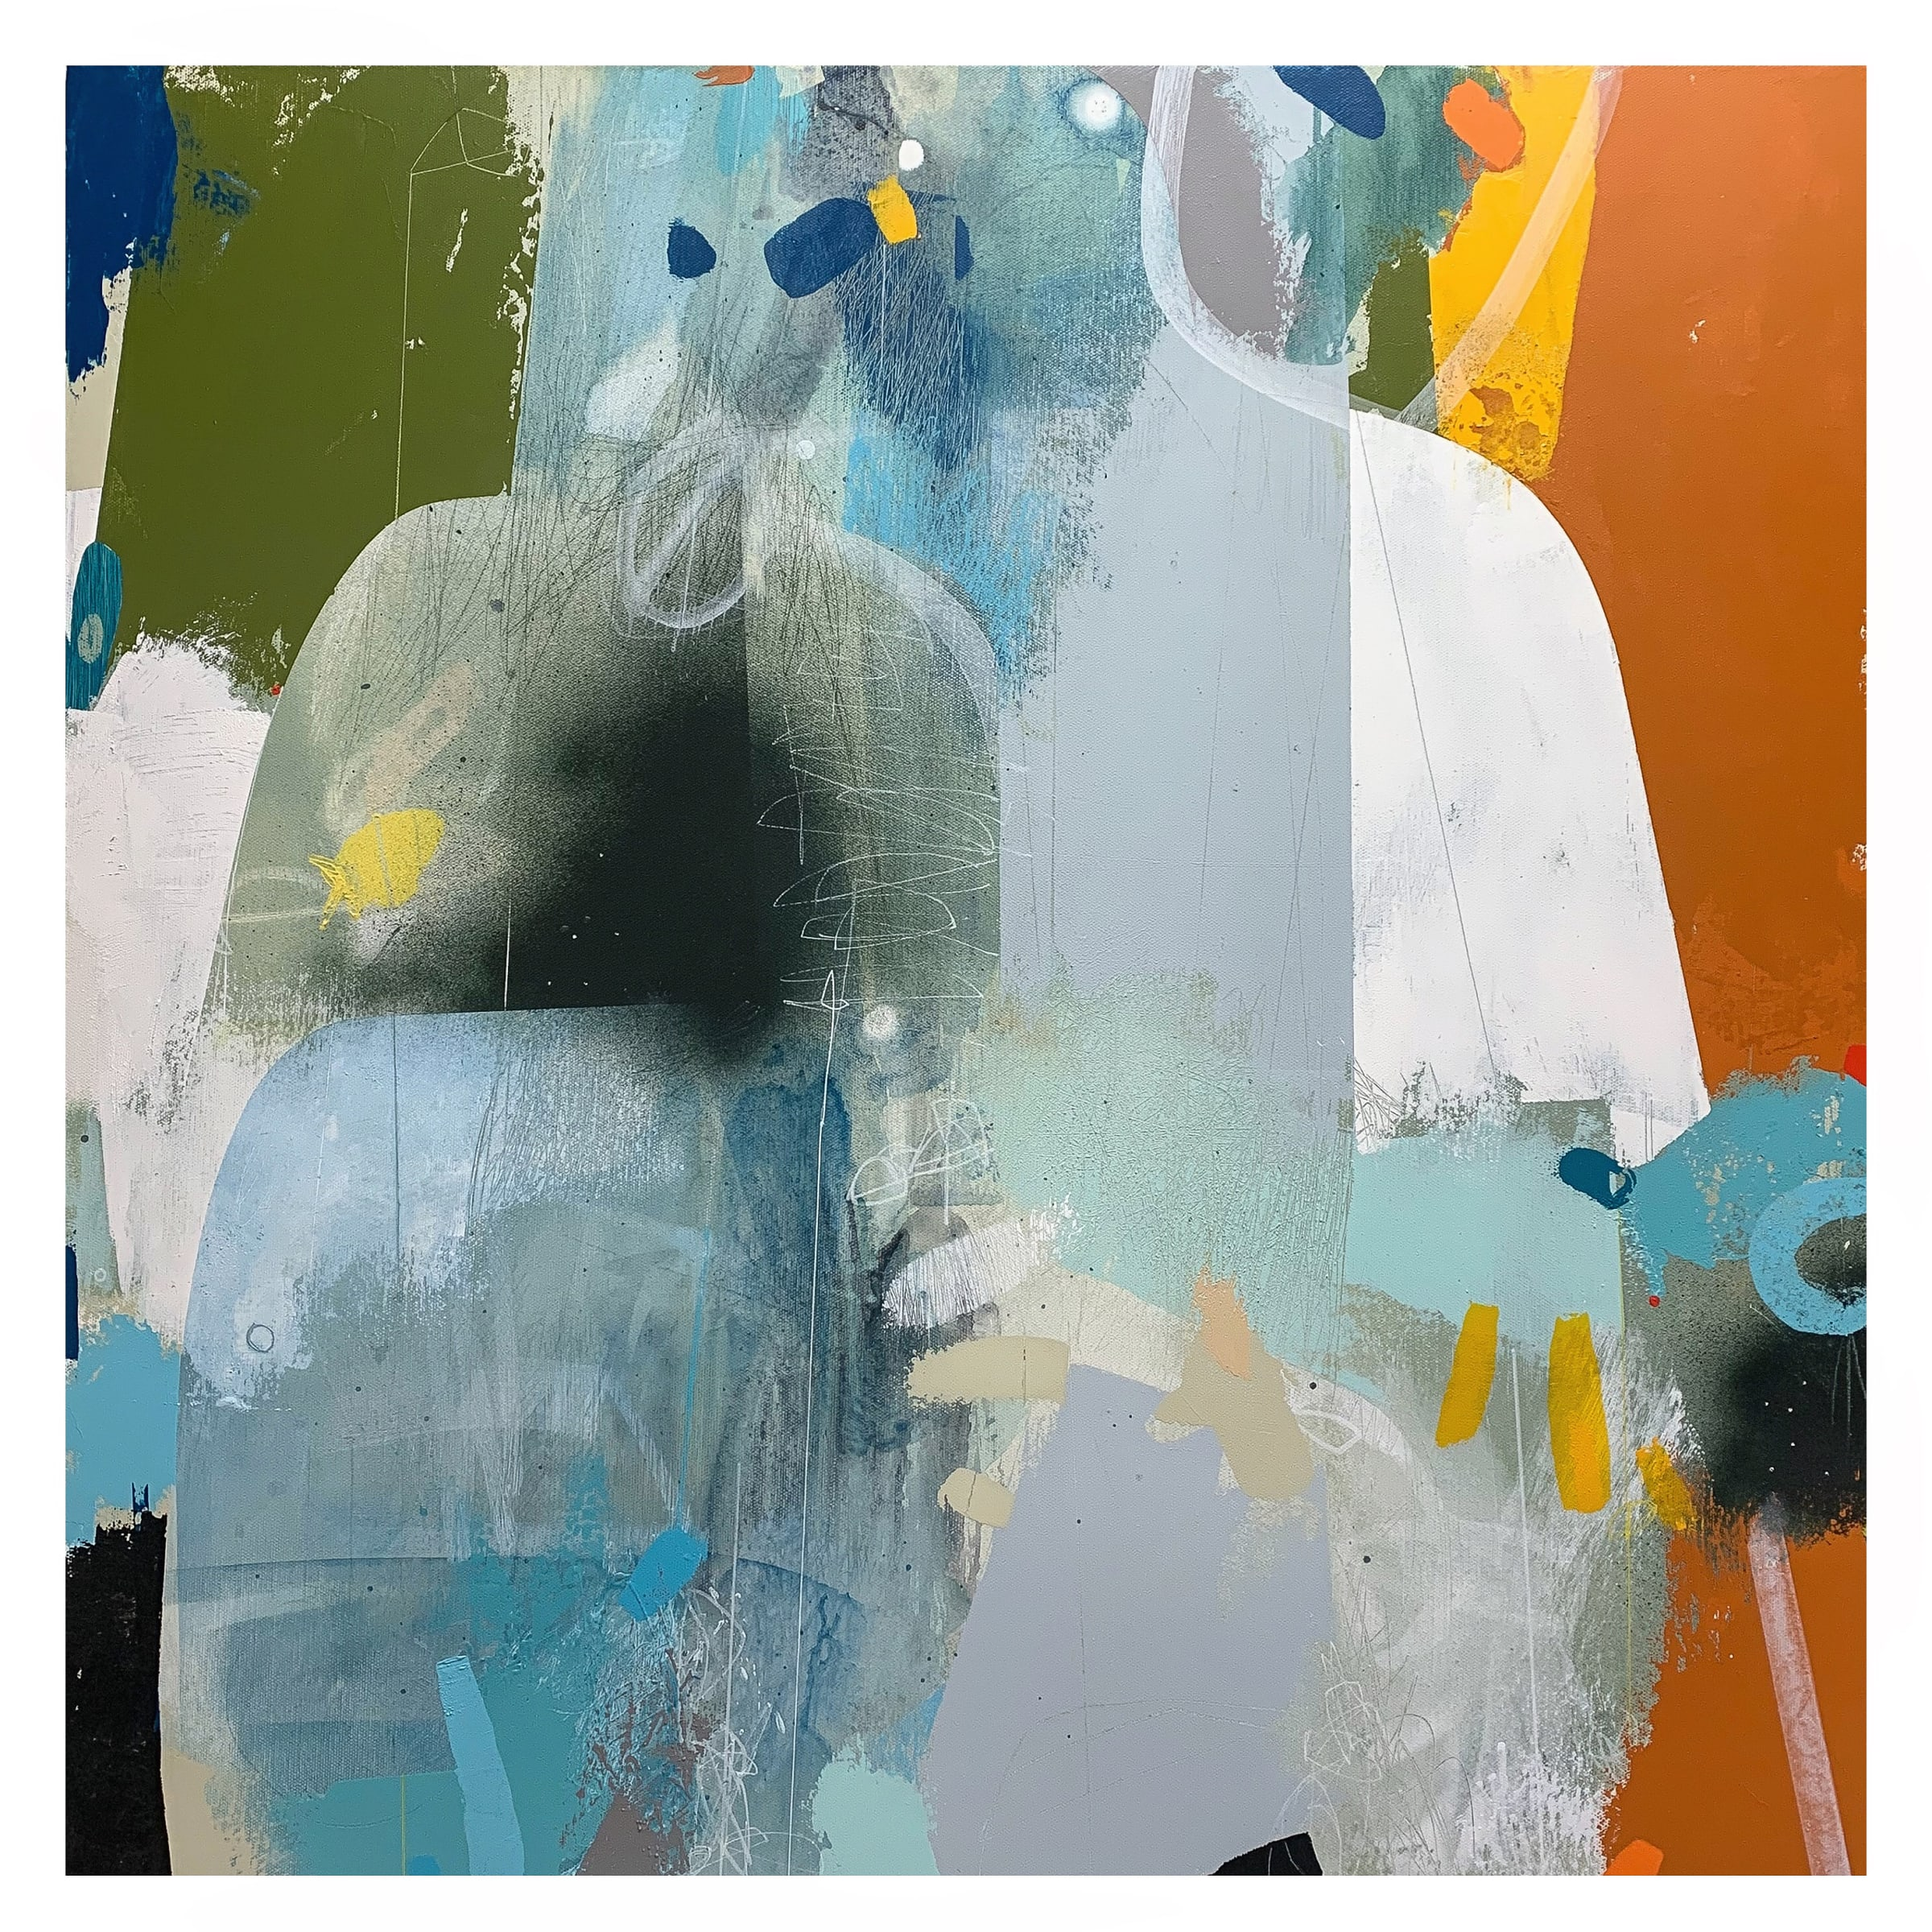 """<span class=""""link fancybox-details-link""""><a href=""""/store/artworks/7027-andrew-bird-twice-one-2020/"""">View Detail Page</a></span><div class=""""artist""""><strong>Andrew Bird</strong></div> b. 1969 <div class=""""title""""><em>Twice One</em>, 2020</div> <div class=""""signed_and_dated"""">signed and titled on reverse</div> <div class=""""medium"""">acrylic on canvas</div> <div class=""""dimensions"""">h. 76 x w. 76 cm</div><div class=""""price"""">£2,500.00</div>"""